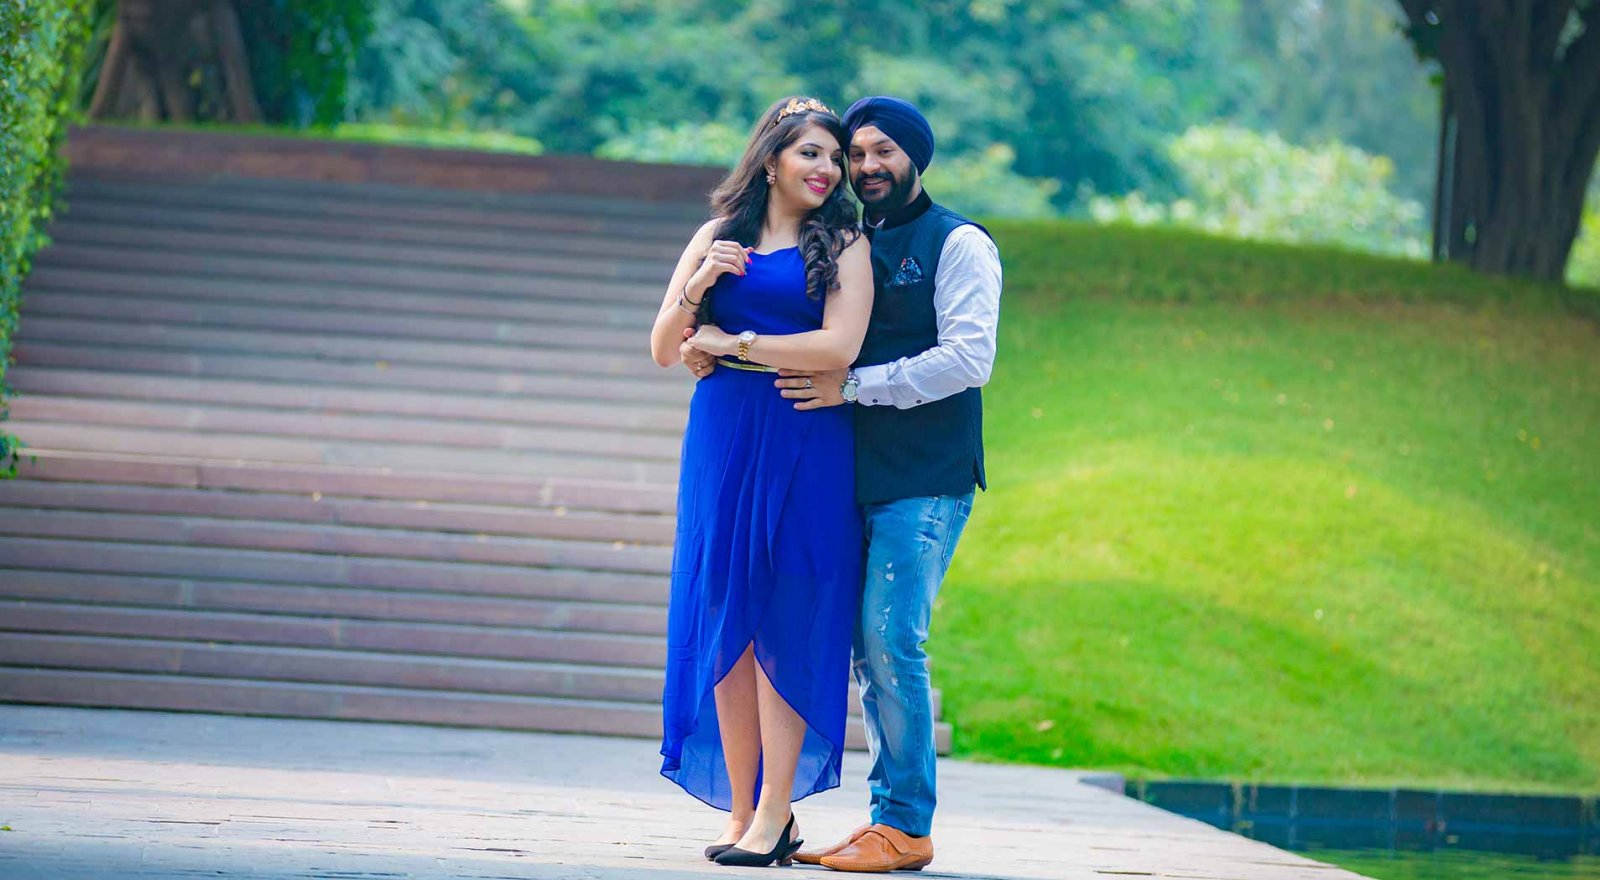 The best pre wedding photography ideas in Sahib and Harnoor photoshoot